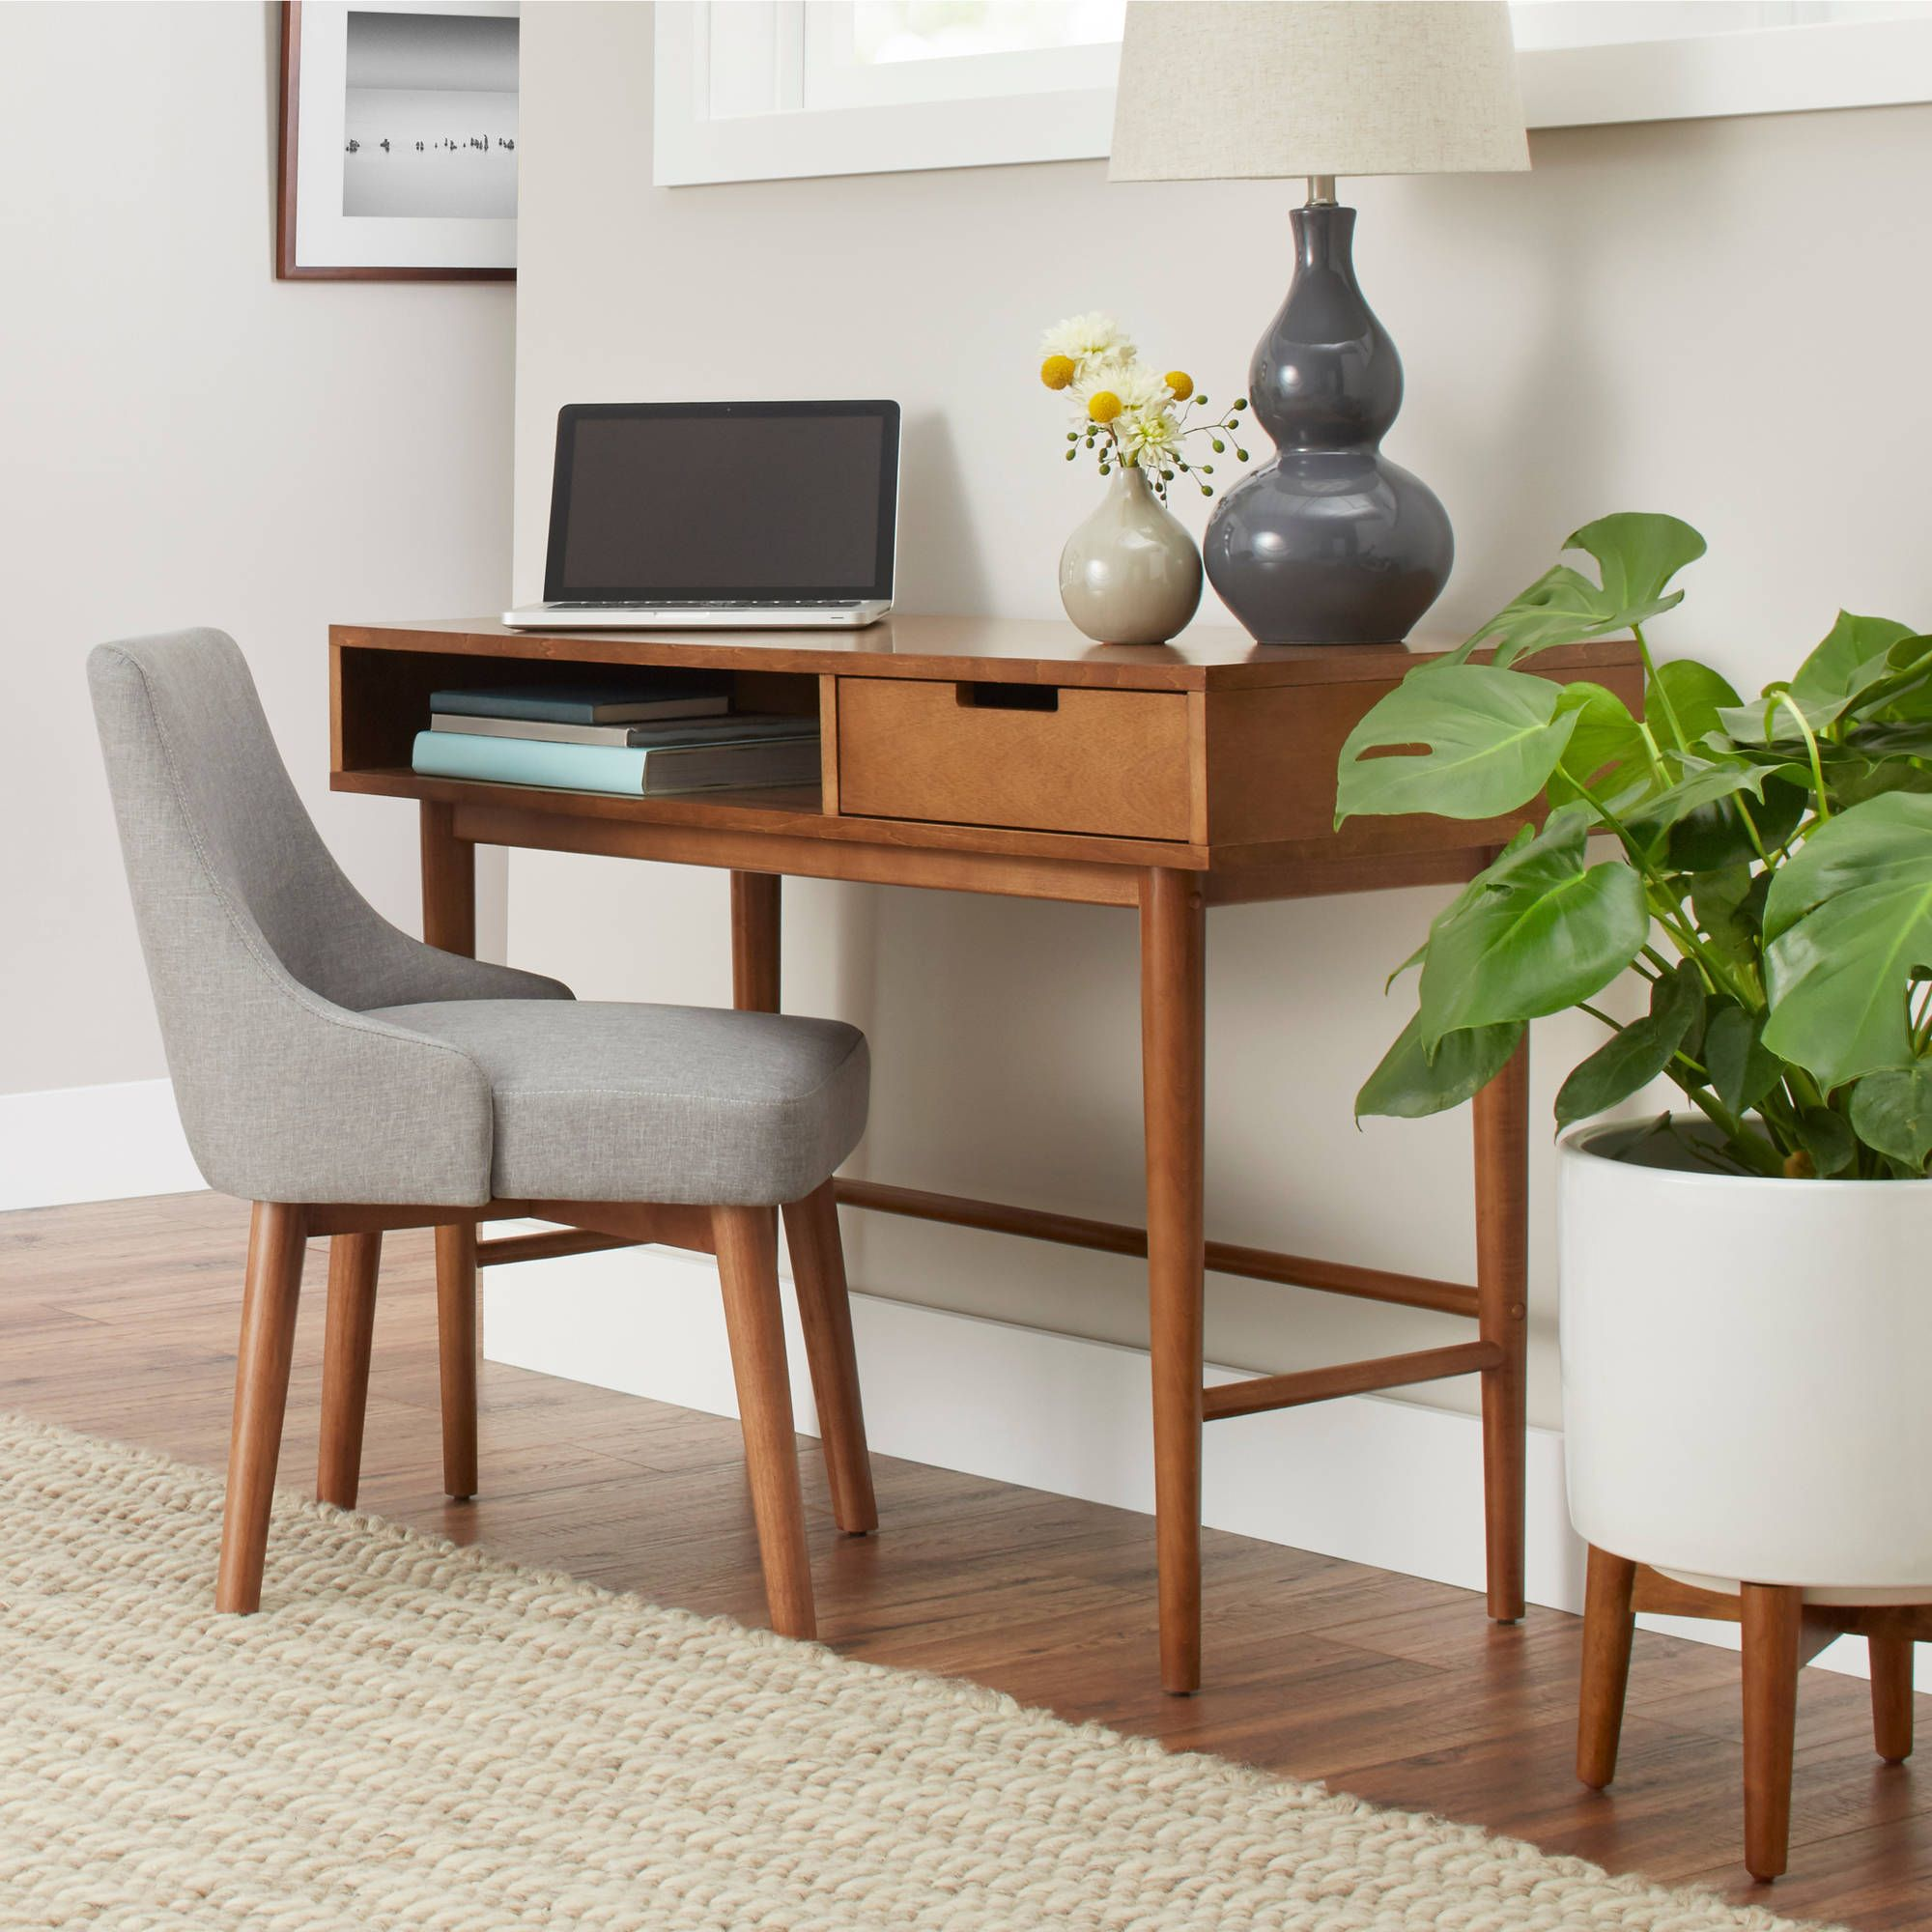 Home With Images Mid Century Modern Desk Modern Desk Mid